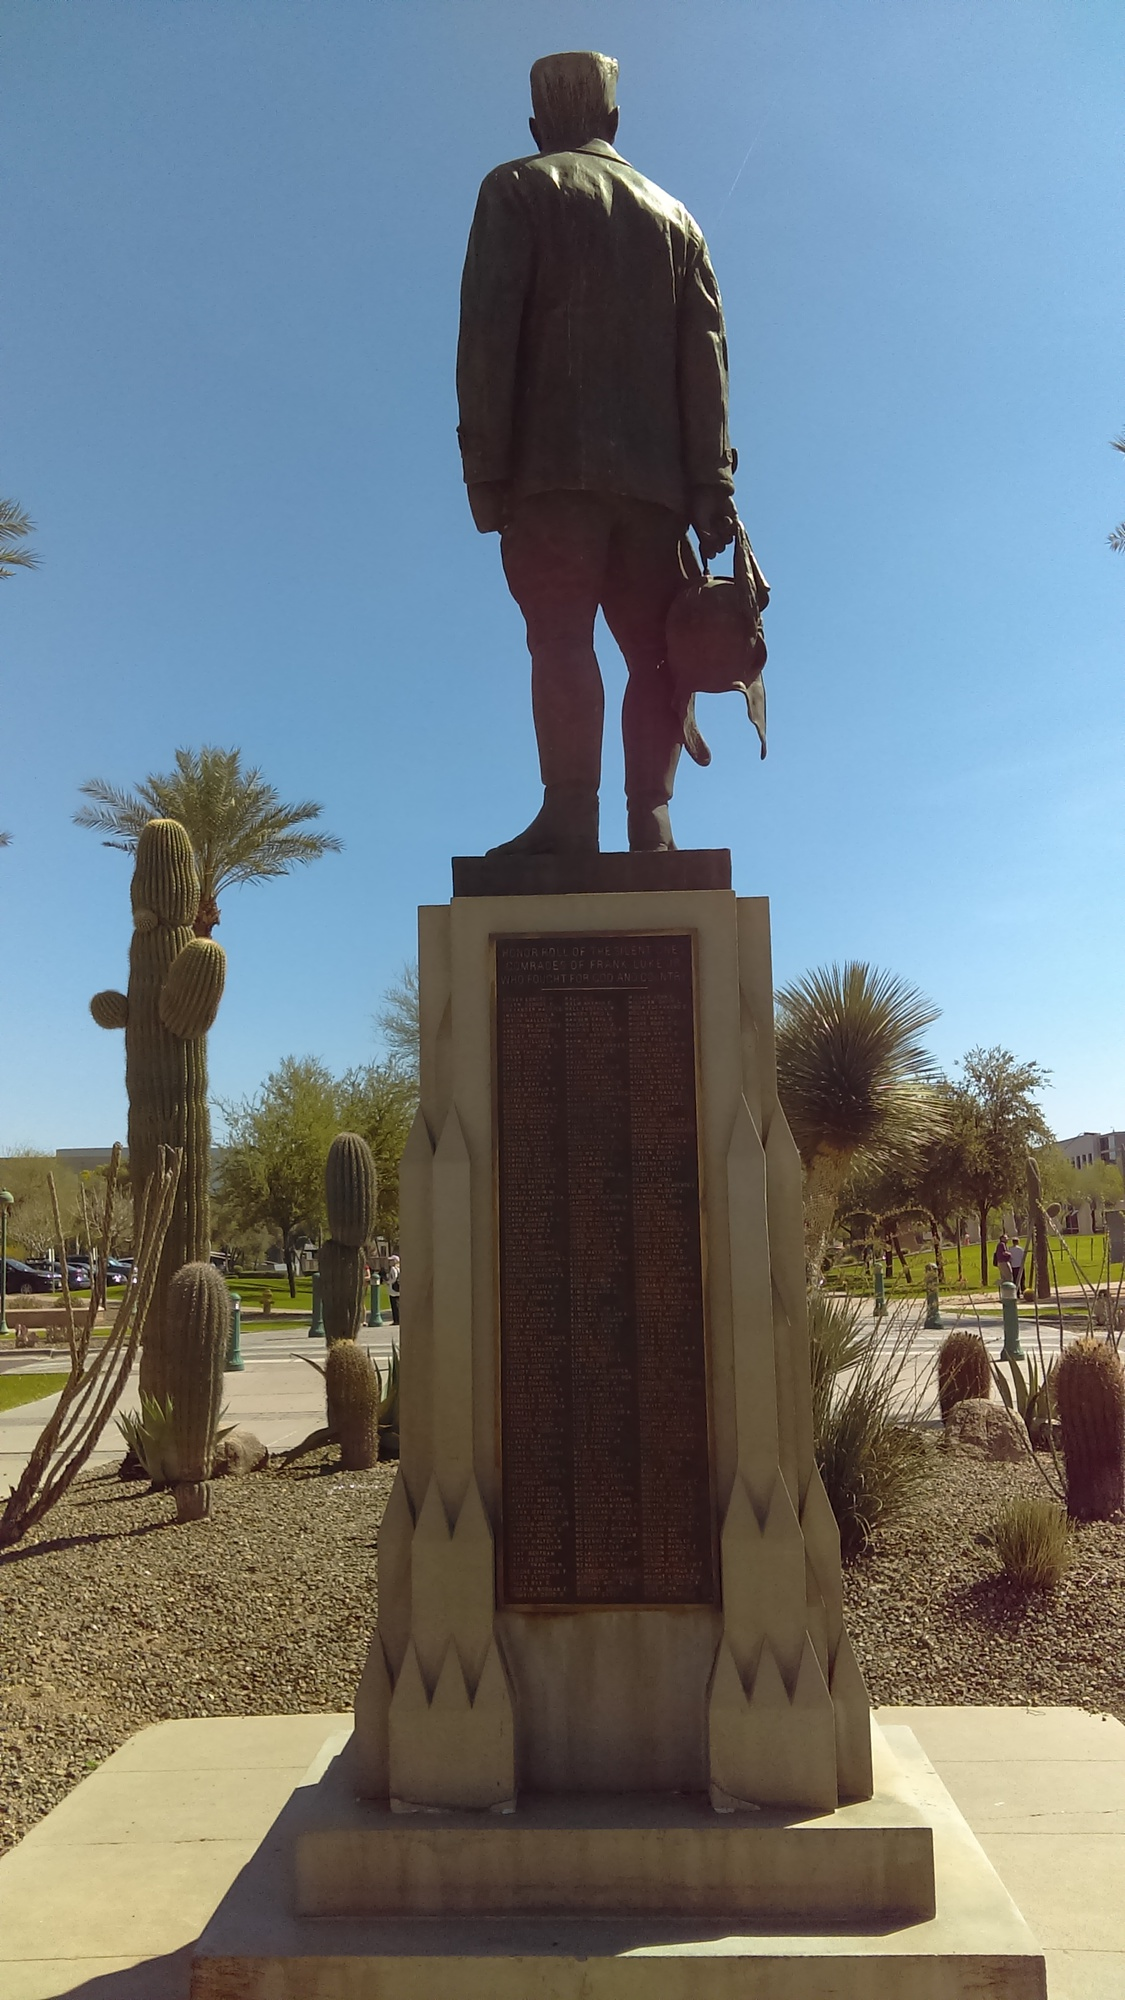 Lt. Frank Luke Jr. Memorial (AZ)